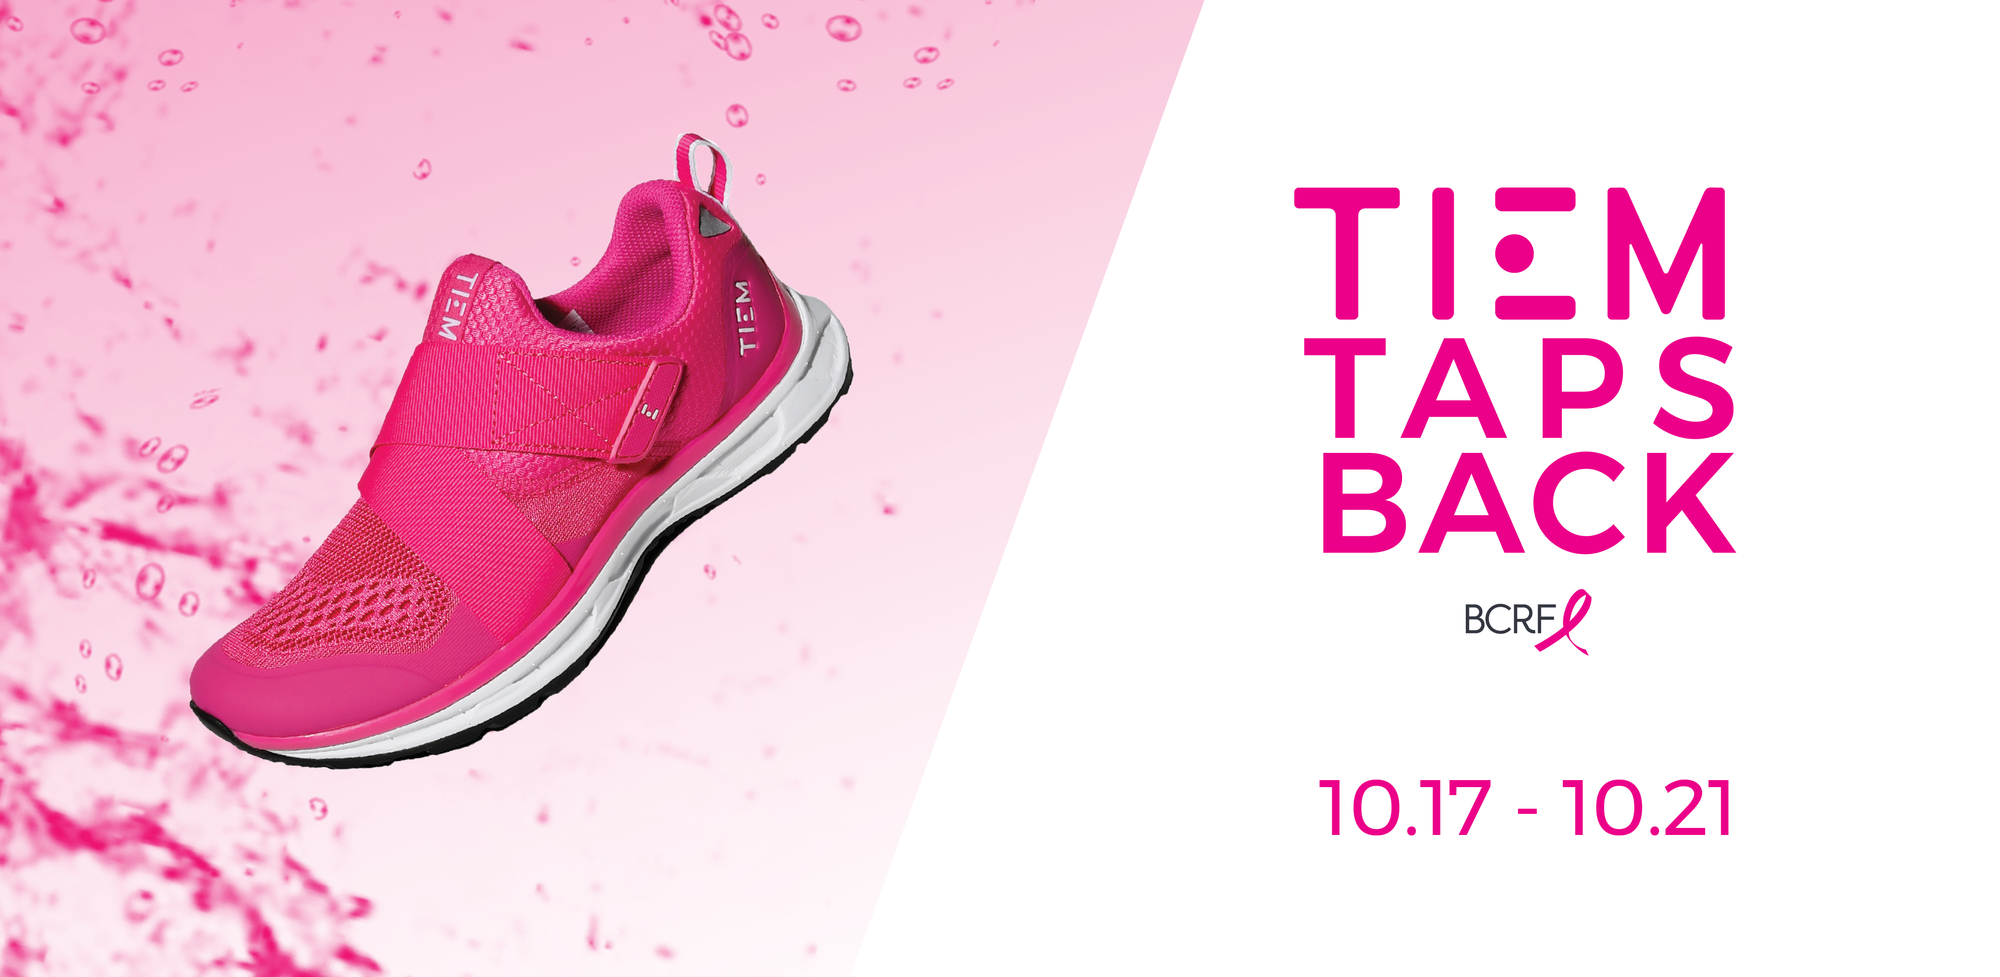 TIEM Taps Back for Breast Cancer | 3rd Annual Ride for Research!